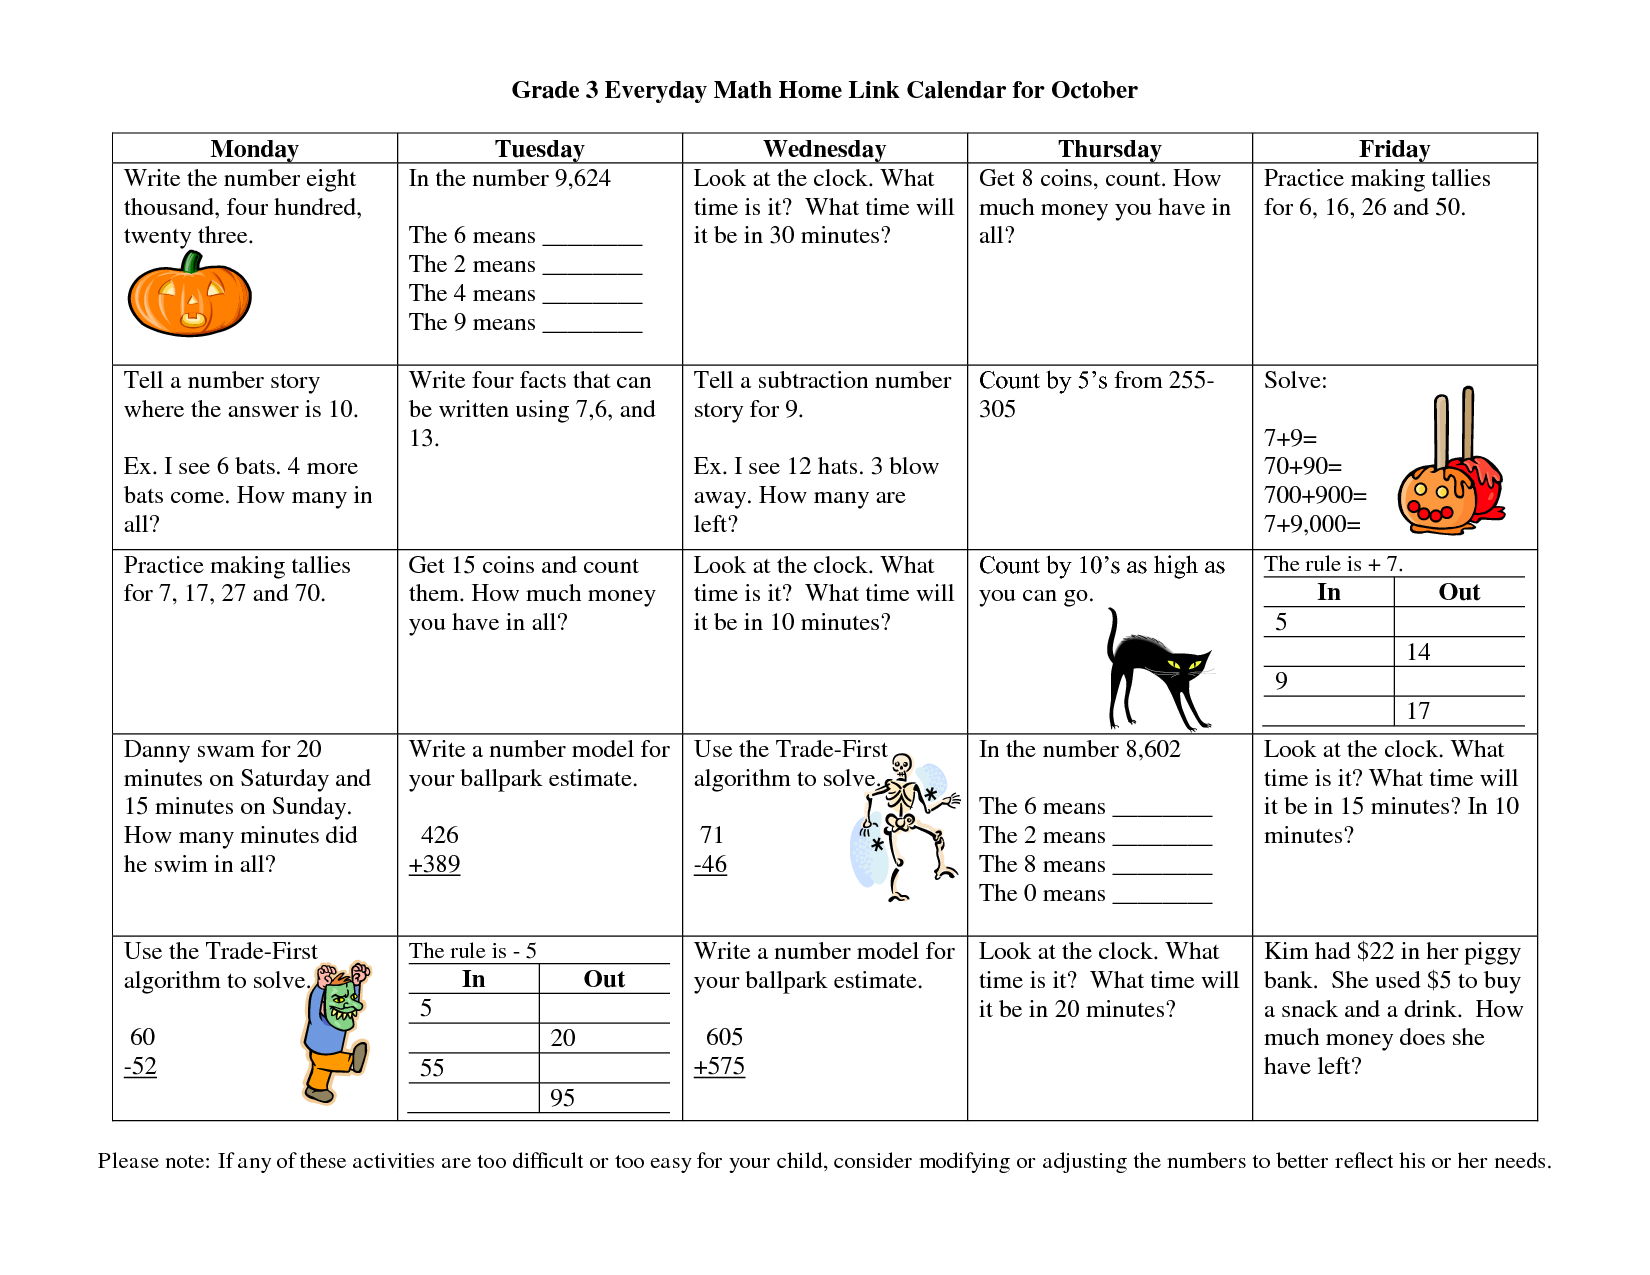 Calendar Math Printables Third Grade : Calendar math for third grade everyday home